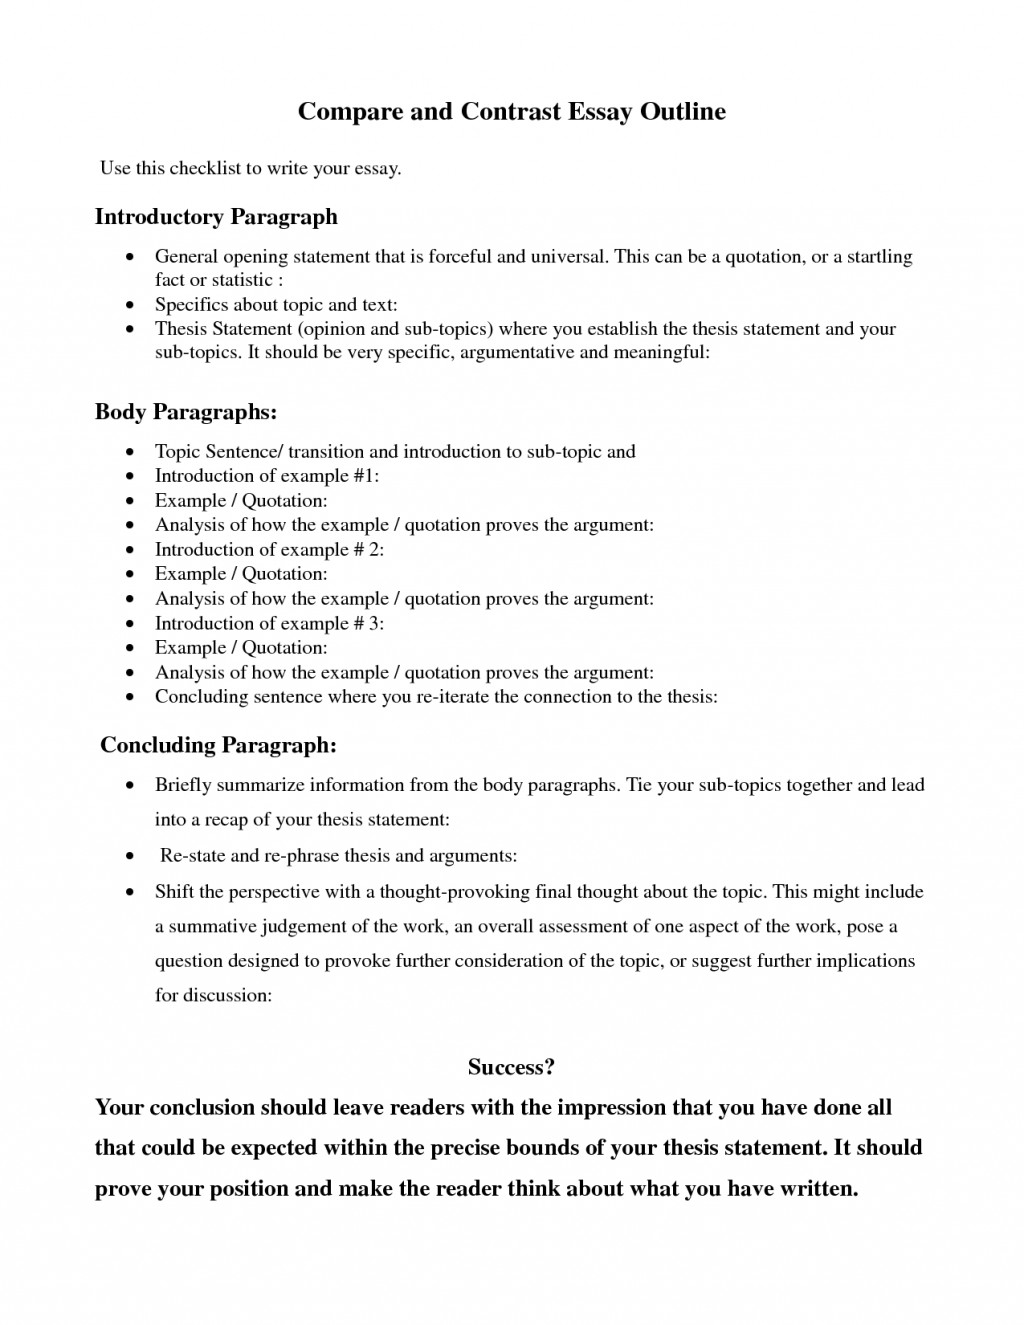 006 Comparison And Contrast Essays Point By Imposing Essay Examples Point-by-point Large